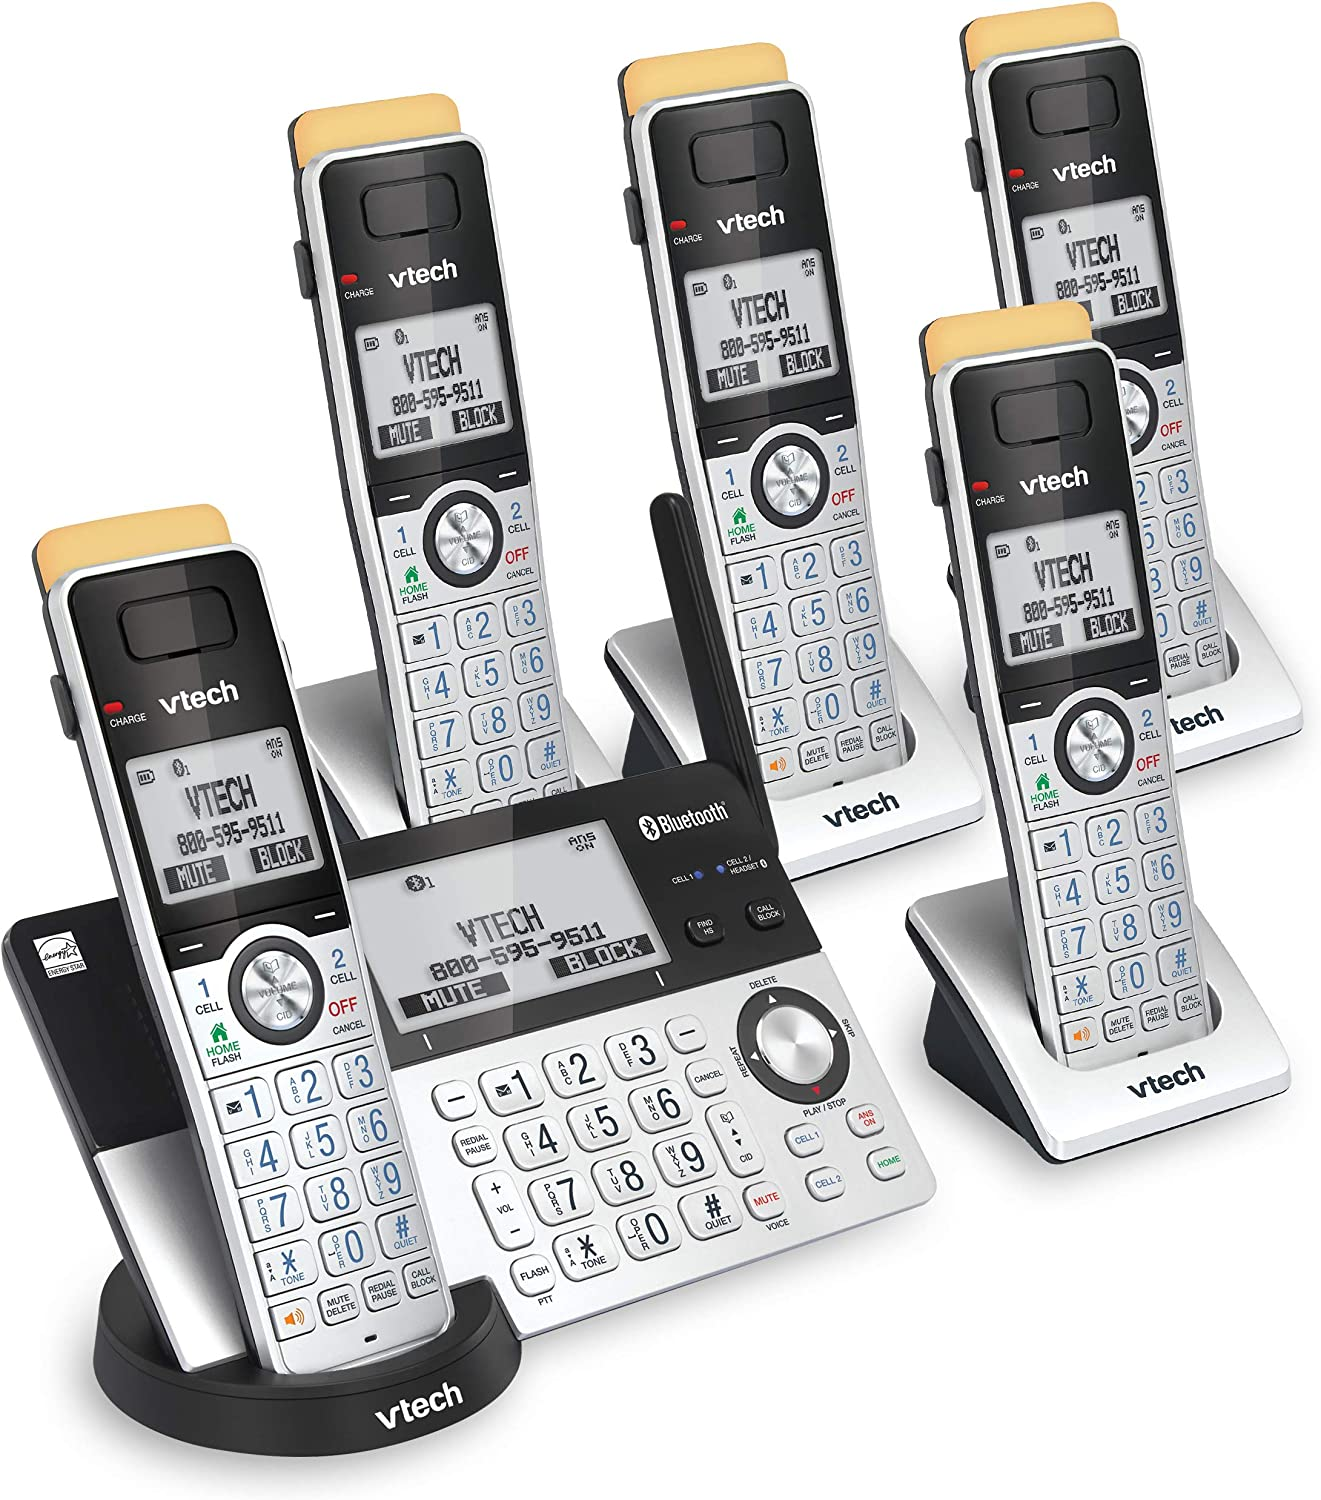 VTech IS8151-5 Super Long Range 5 Handset DECT 6.0 Cordless Phone for Home with Answering Machine, 2300 ft Range, Call Blocking, Bluetooth, Headset Jack, Power Backup, Intercom, Expandable to 12 HS